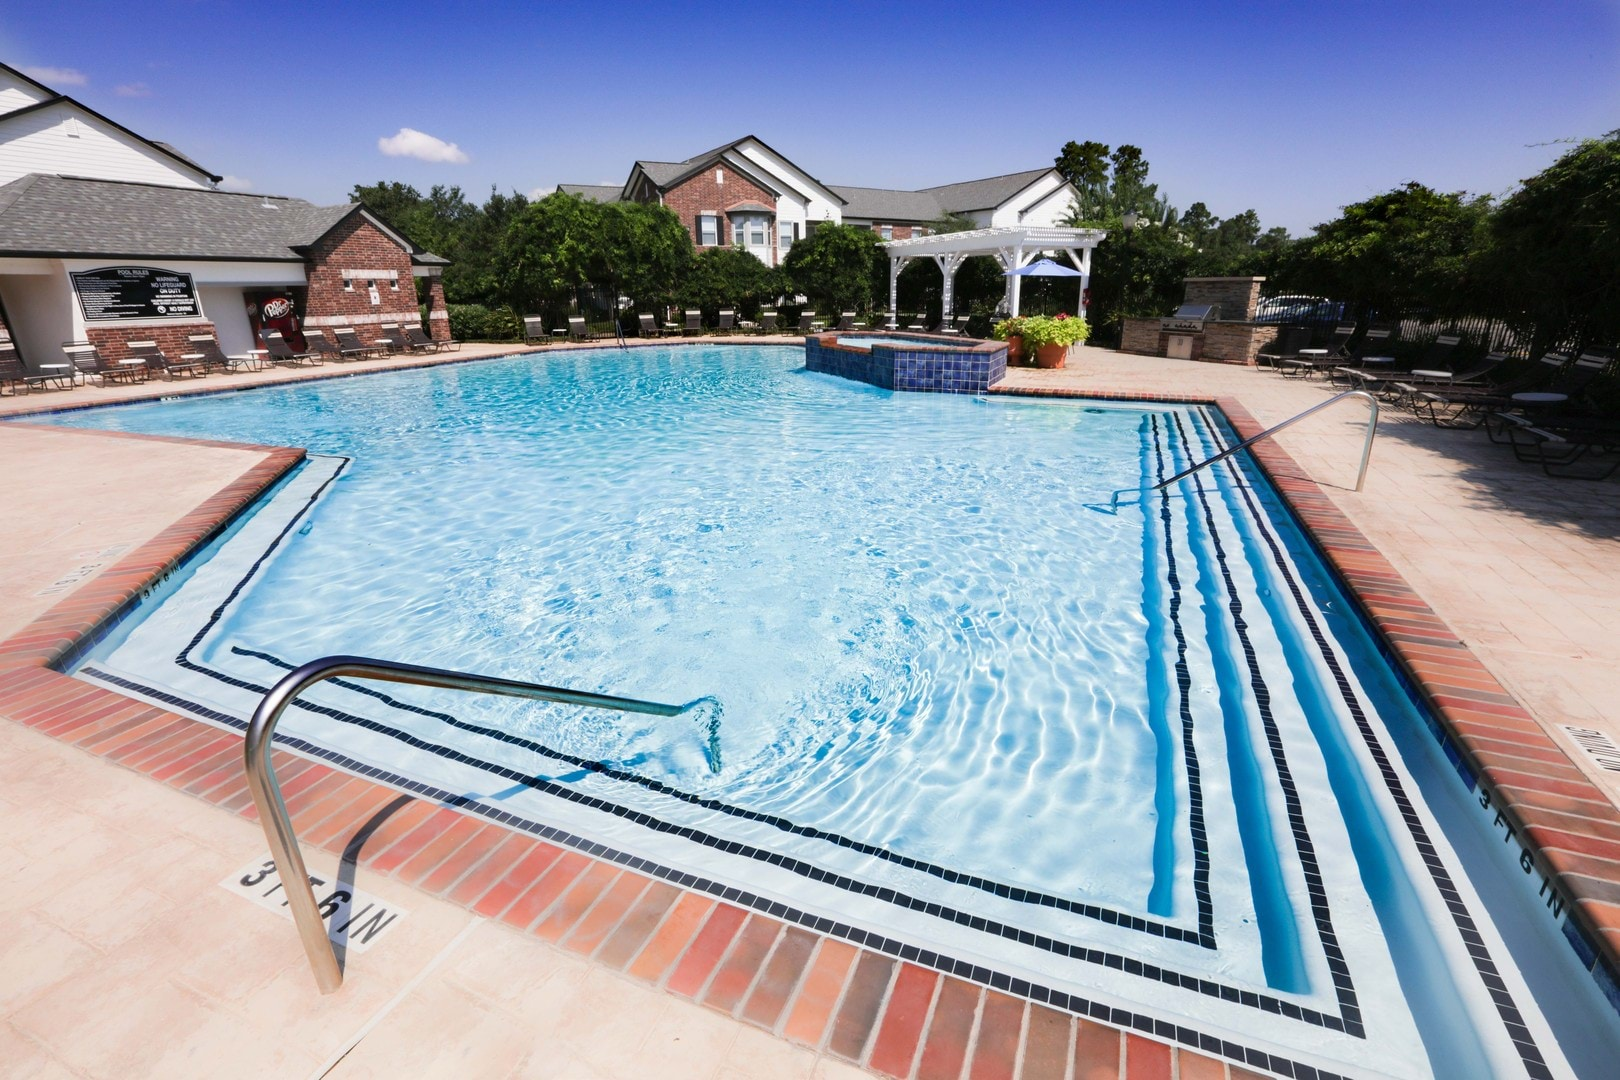 villas at cypresswood photo gallery houston tx apartment pictures